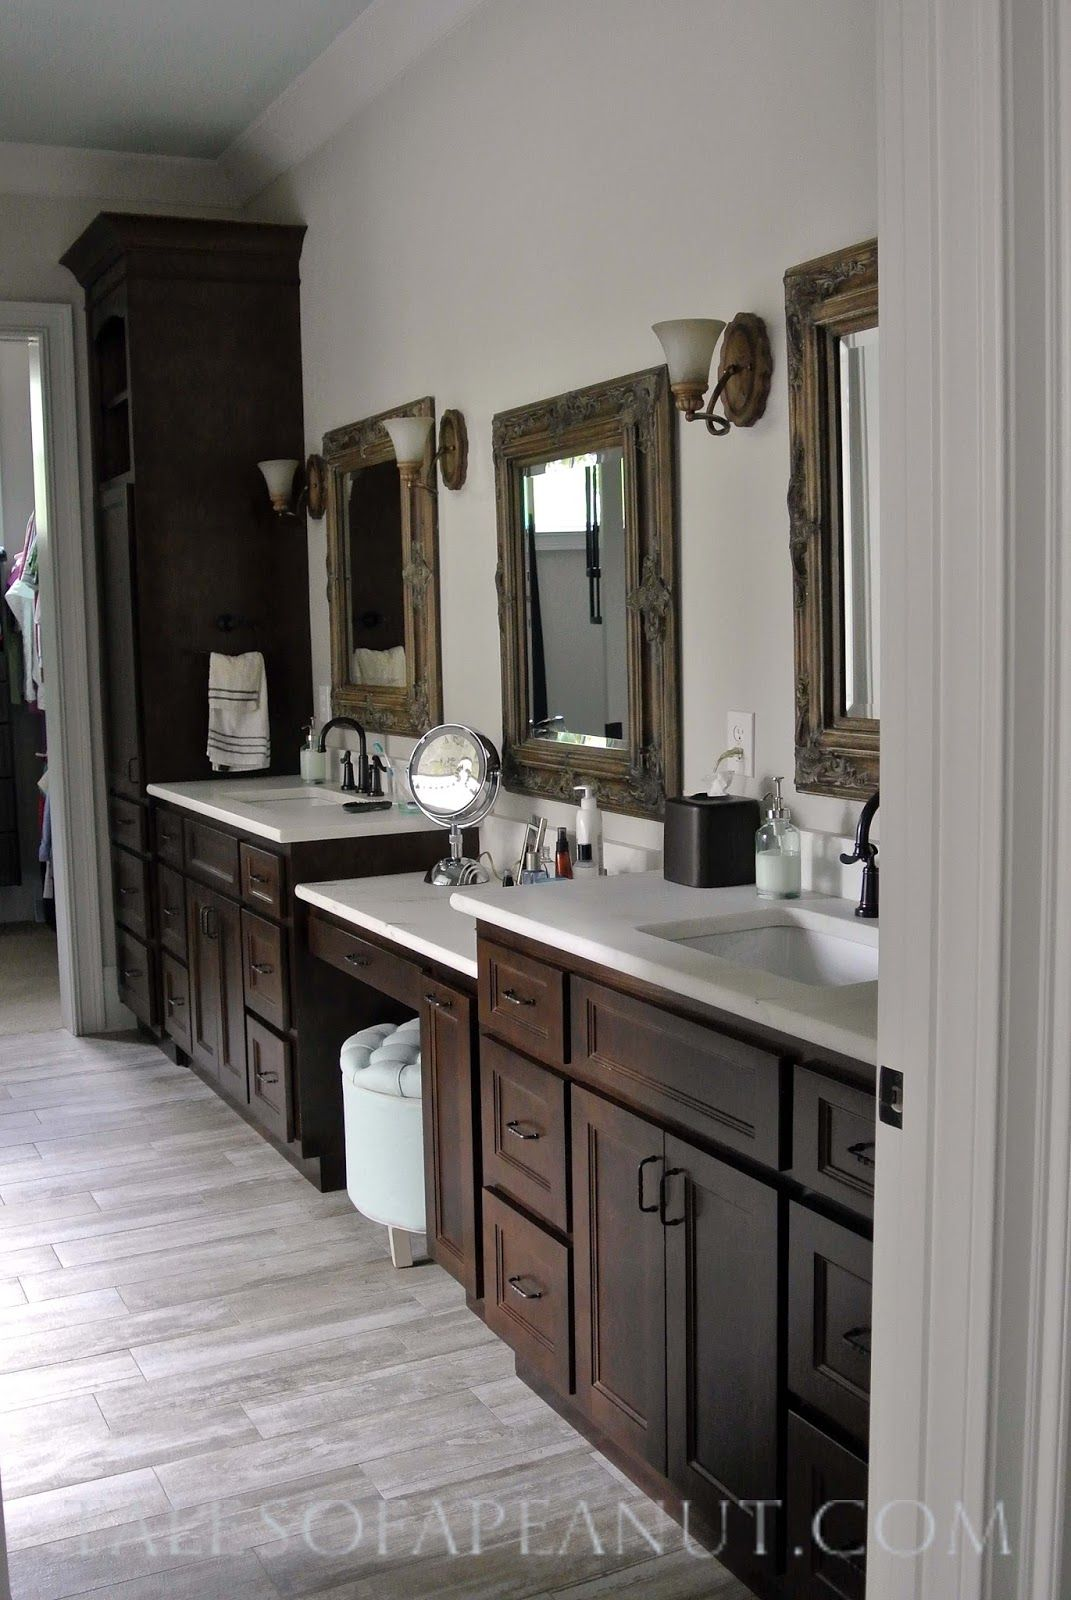 10 More Bathroom Makeovers To Check Out Bathrooms Remodel